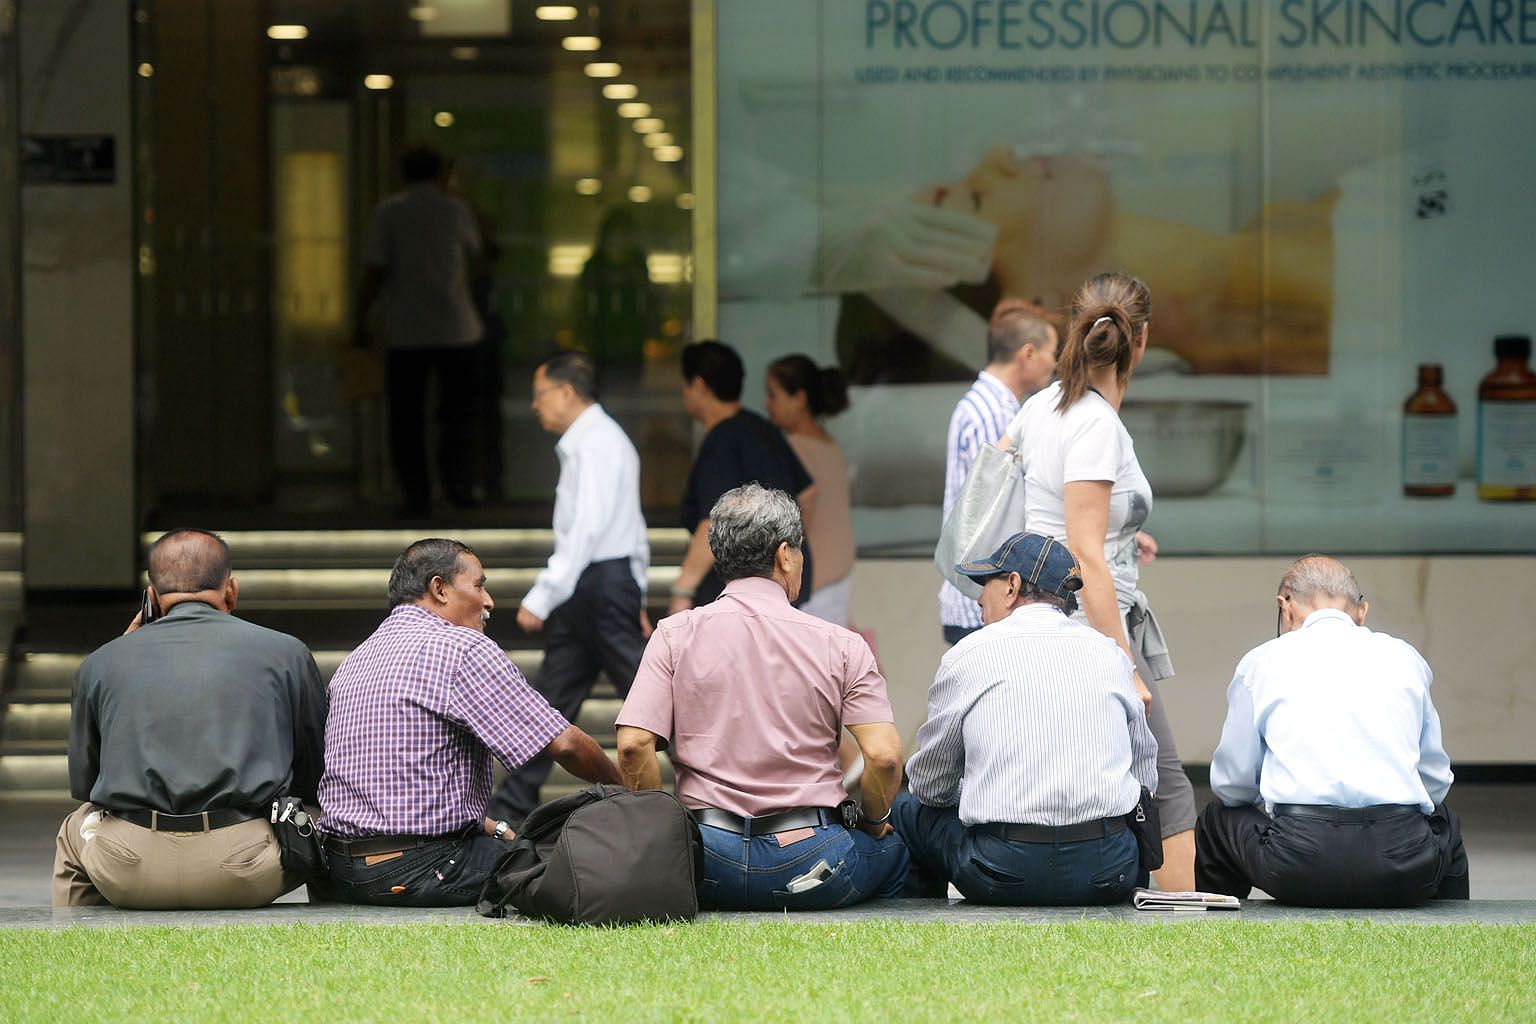 Keeping the older and more experienced workers in the workforce would not jeopardise opportunities for younger workers, given Singapore's low population growth, says the writer. Eliminating retirement age would also likely result in Singapore importing fe